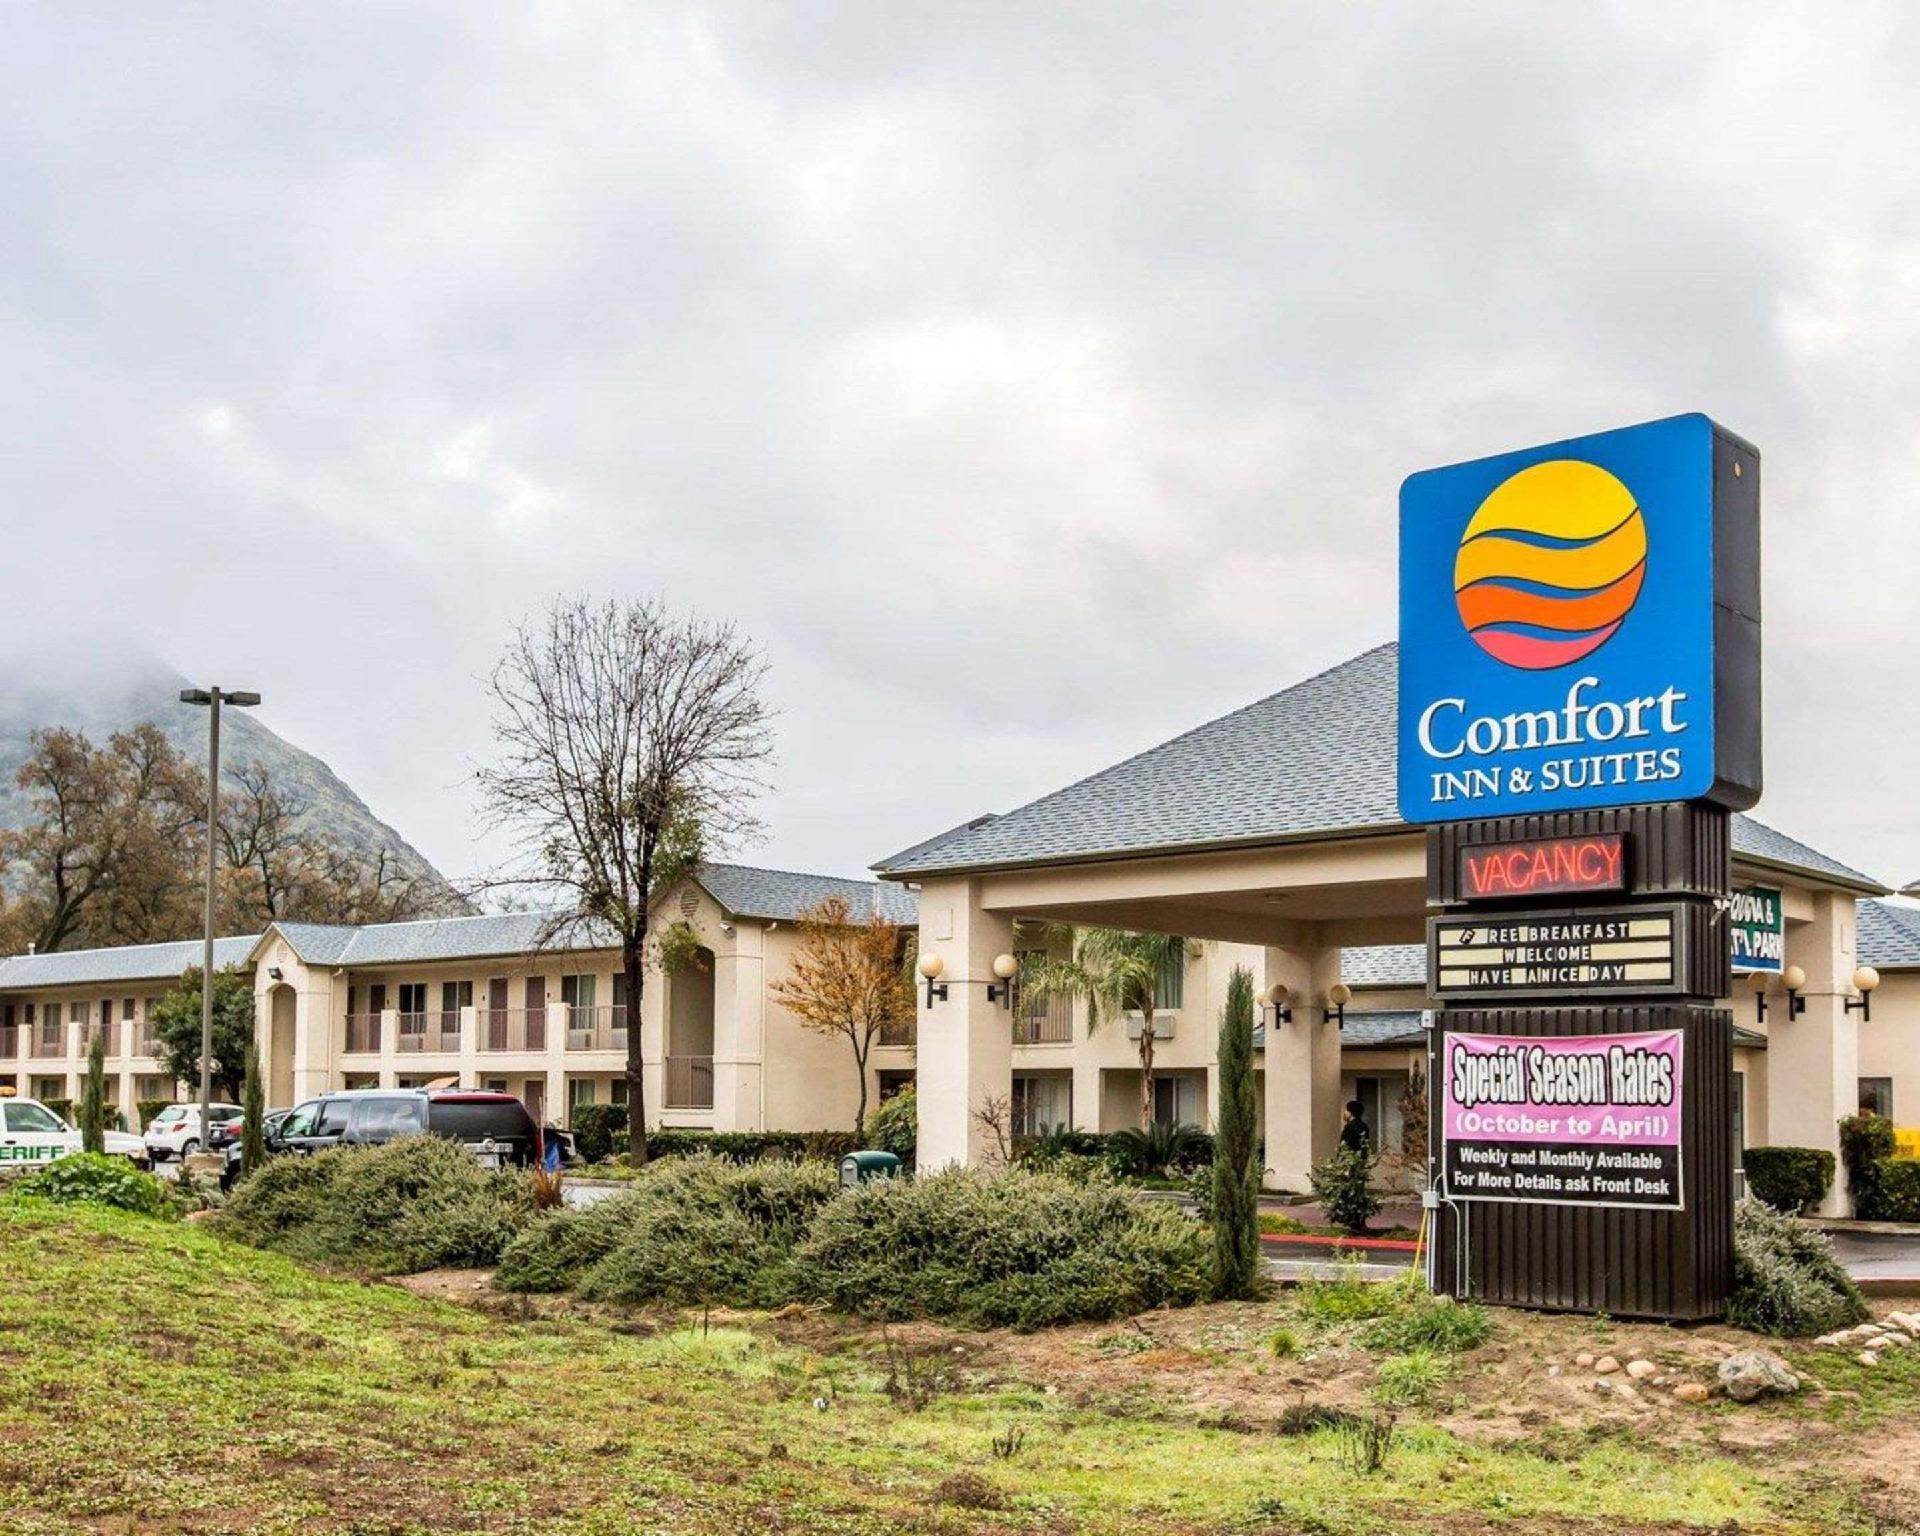 Comfort Inn & Suites Sequoia Kings Canyon Reviews